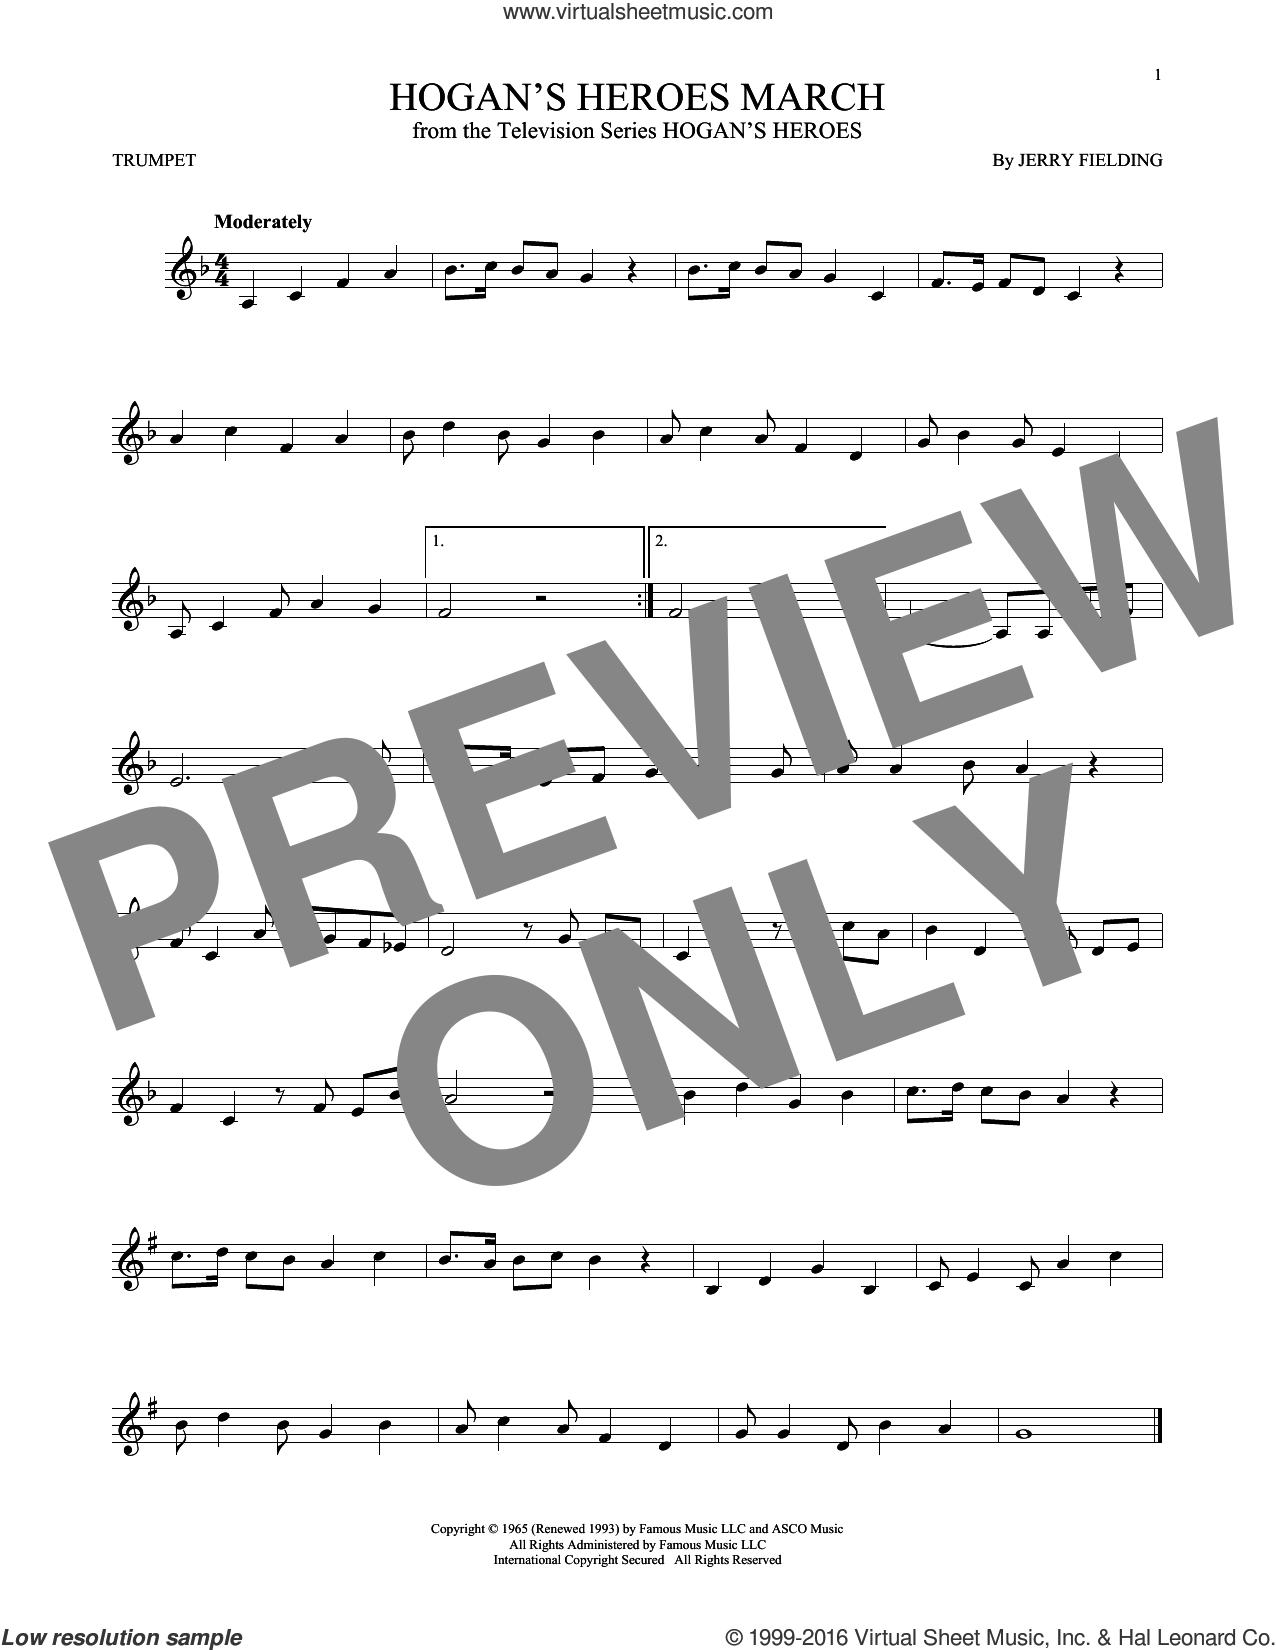 Hogan's Heroes March sheet music for trumpet solo by Jerry Fielding, intermediate